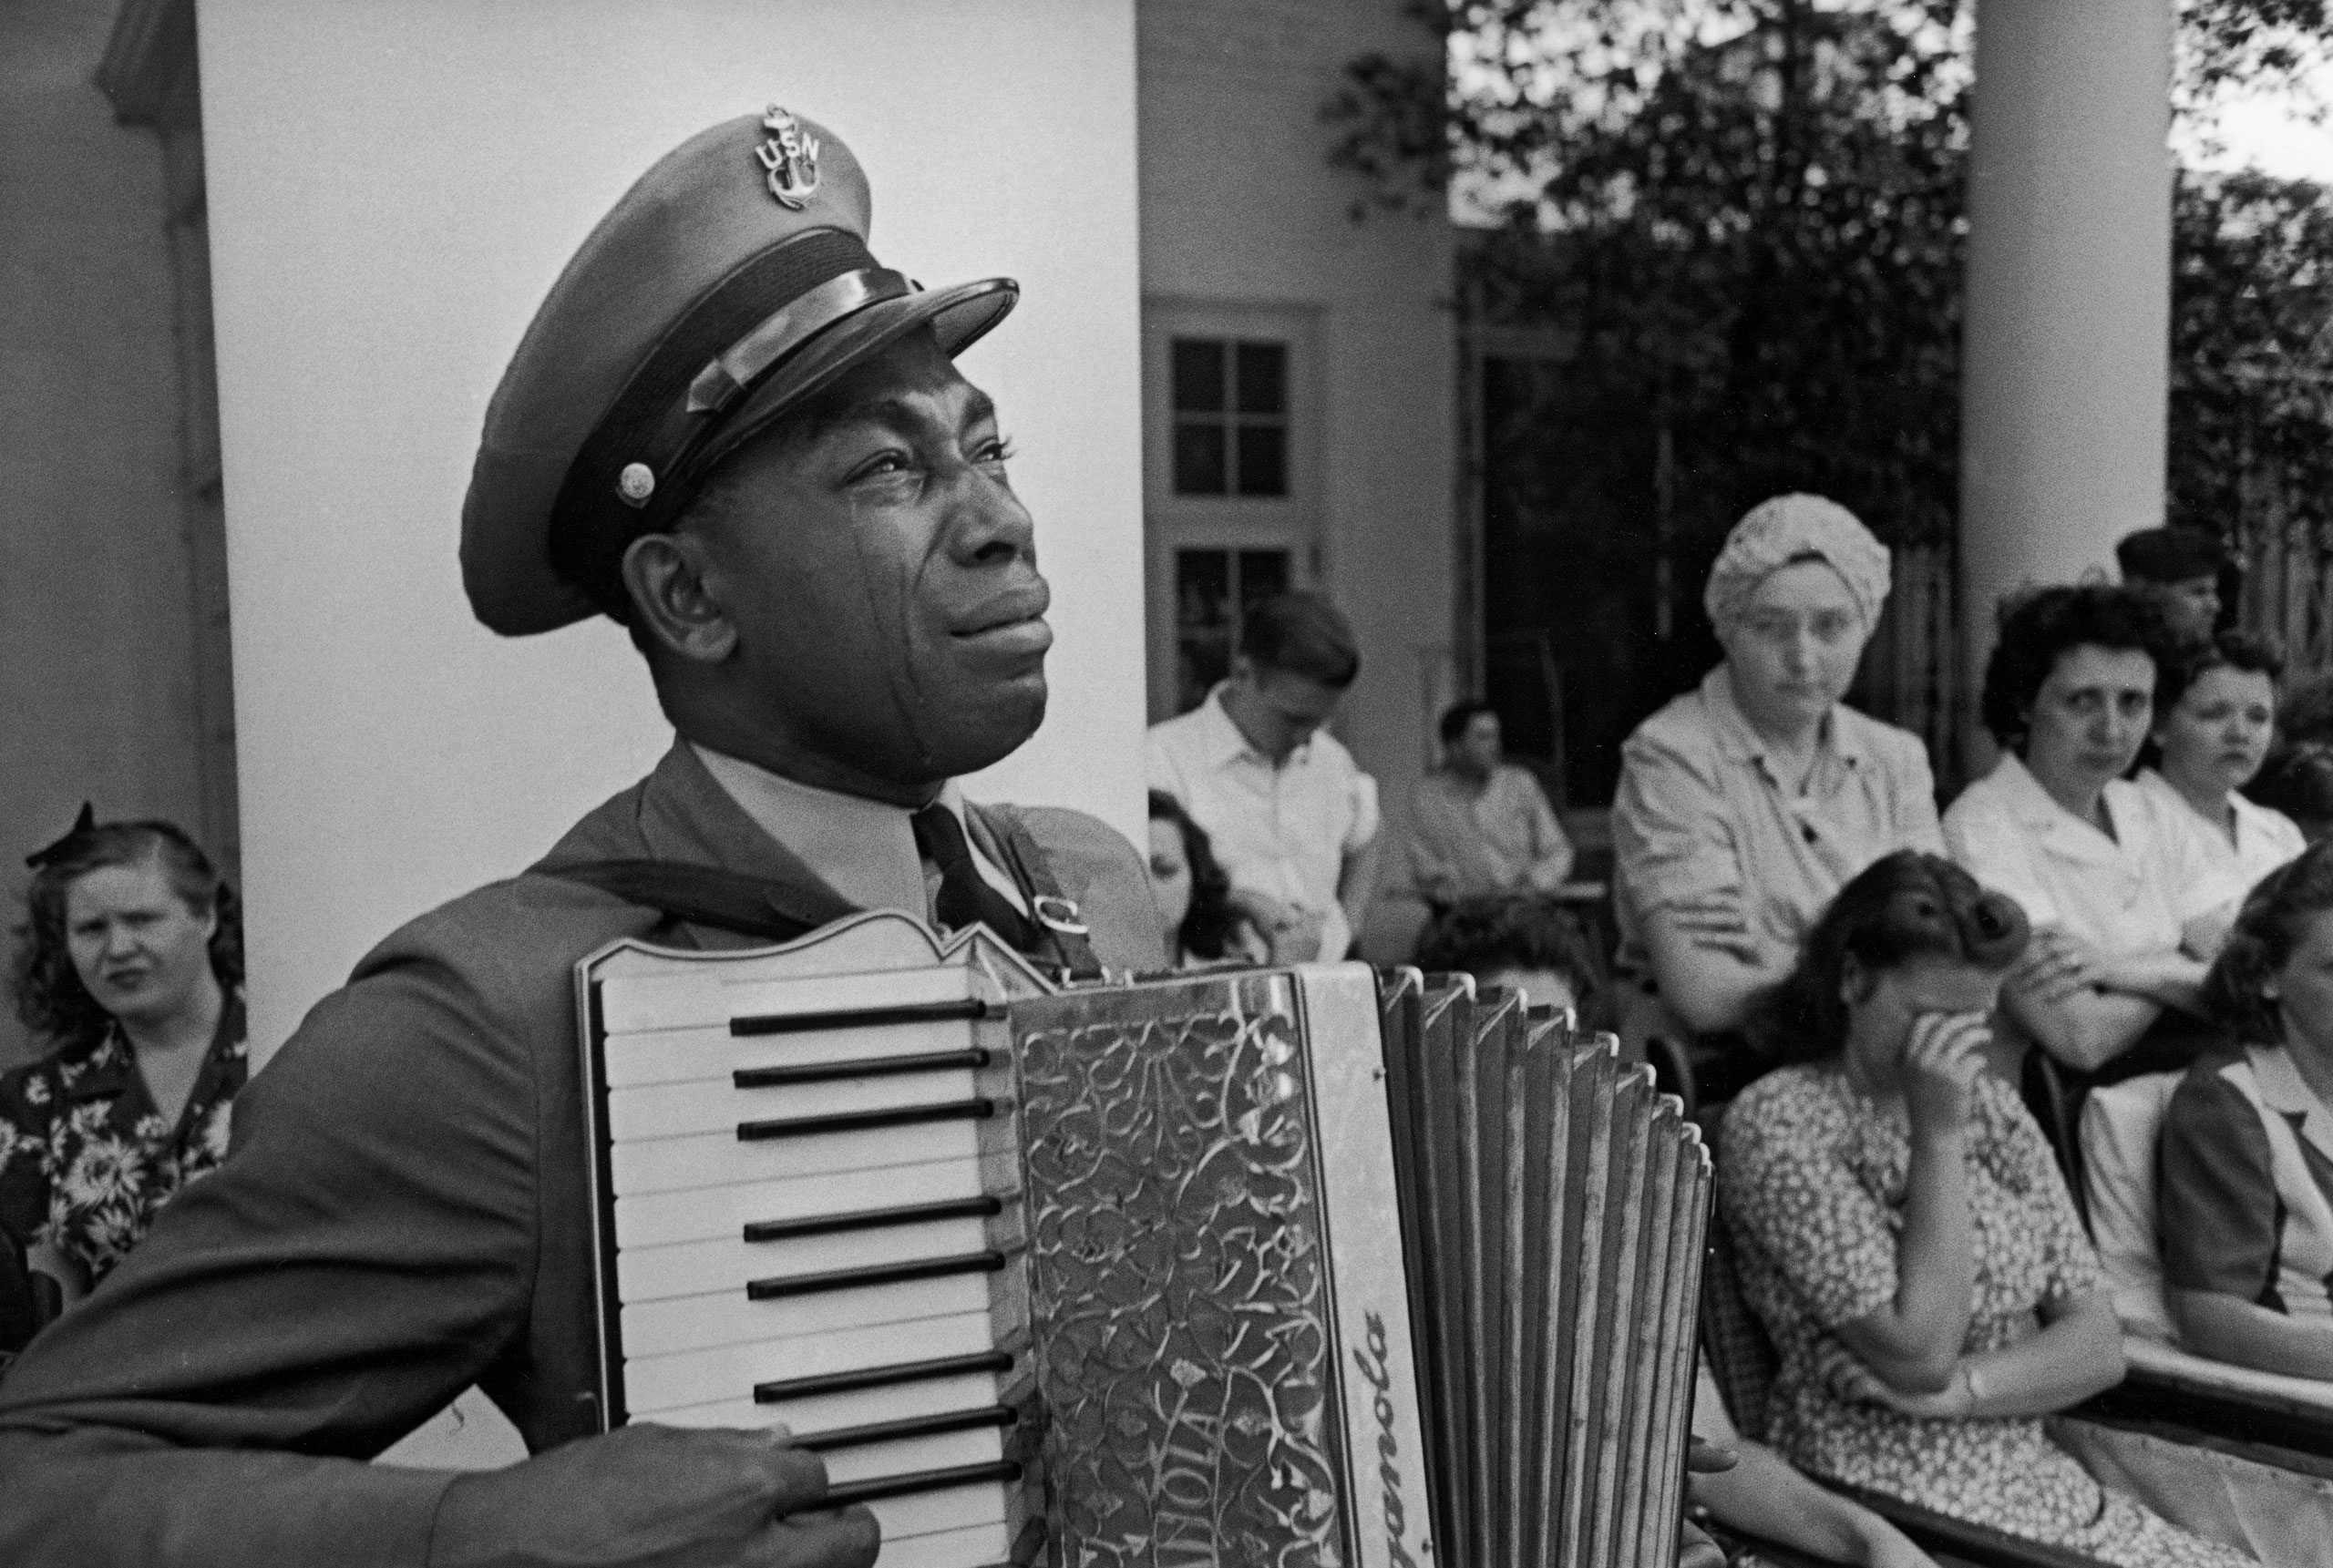 Navy CPO Graham Jackson with tears of grief streaming down his cheeks as he plays 'Goin' Home' on the accordion while Pres. Franklin D. Roosevelt's body is carried from the Warm Springs Foundation where he died suddenly on April 12, of a stroke.